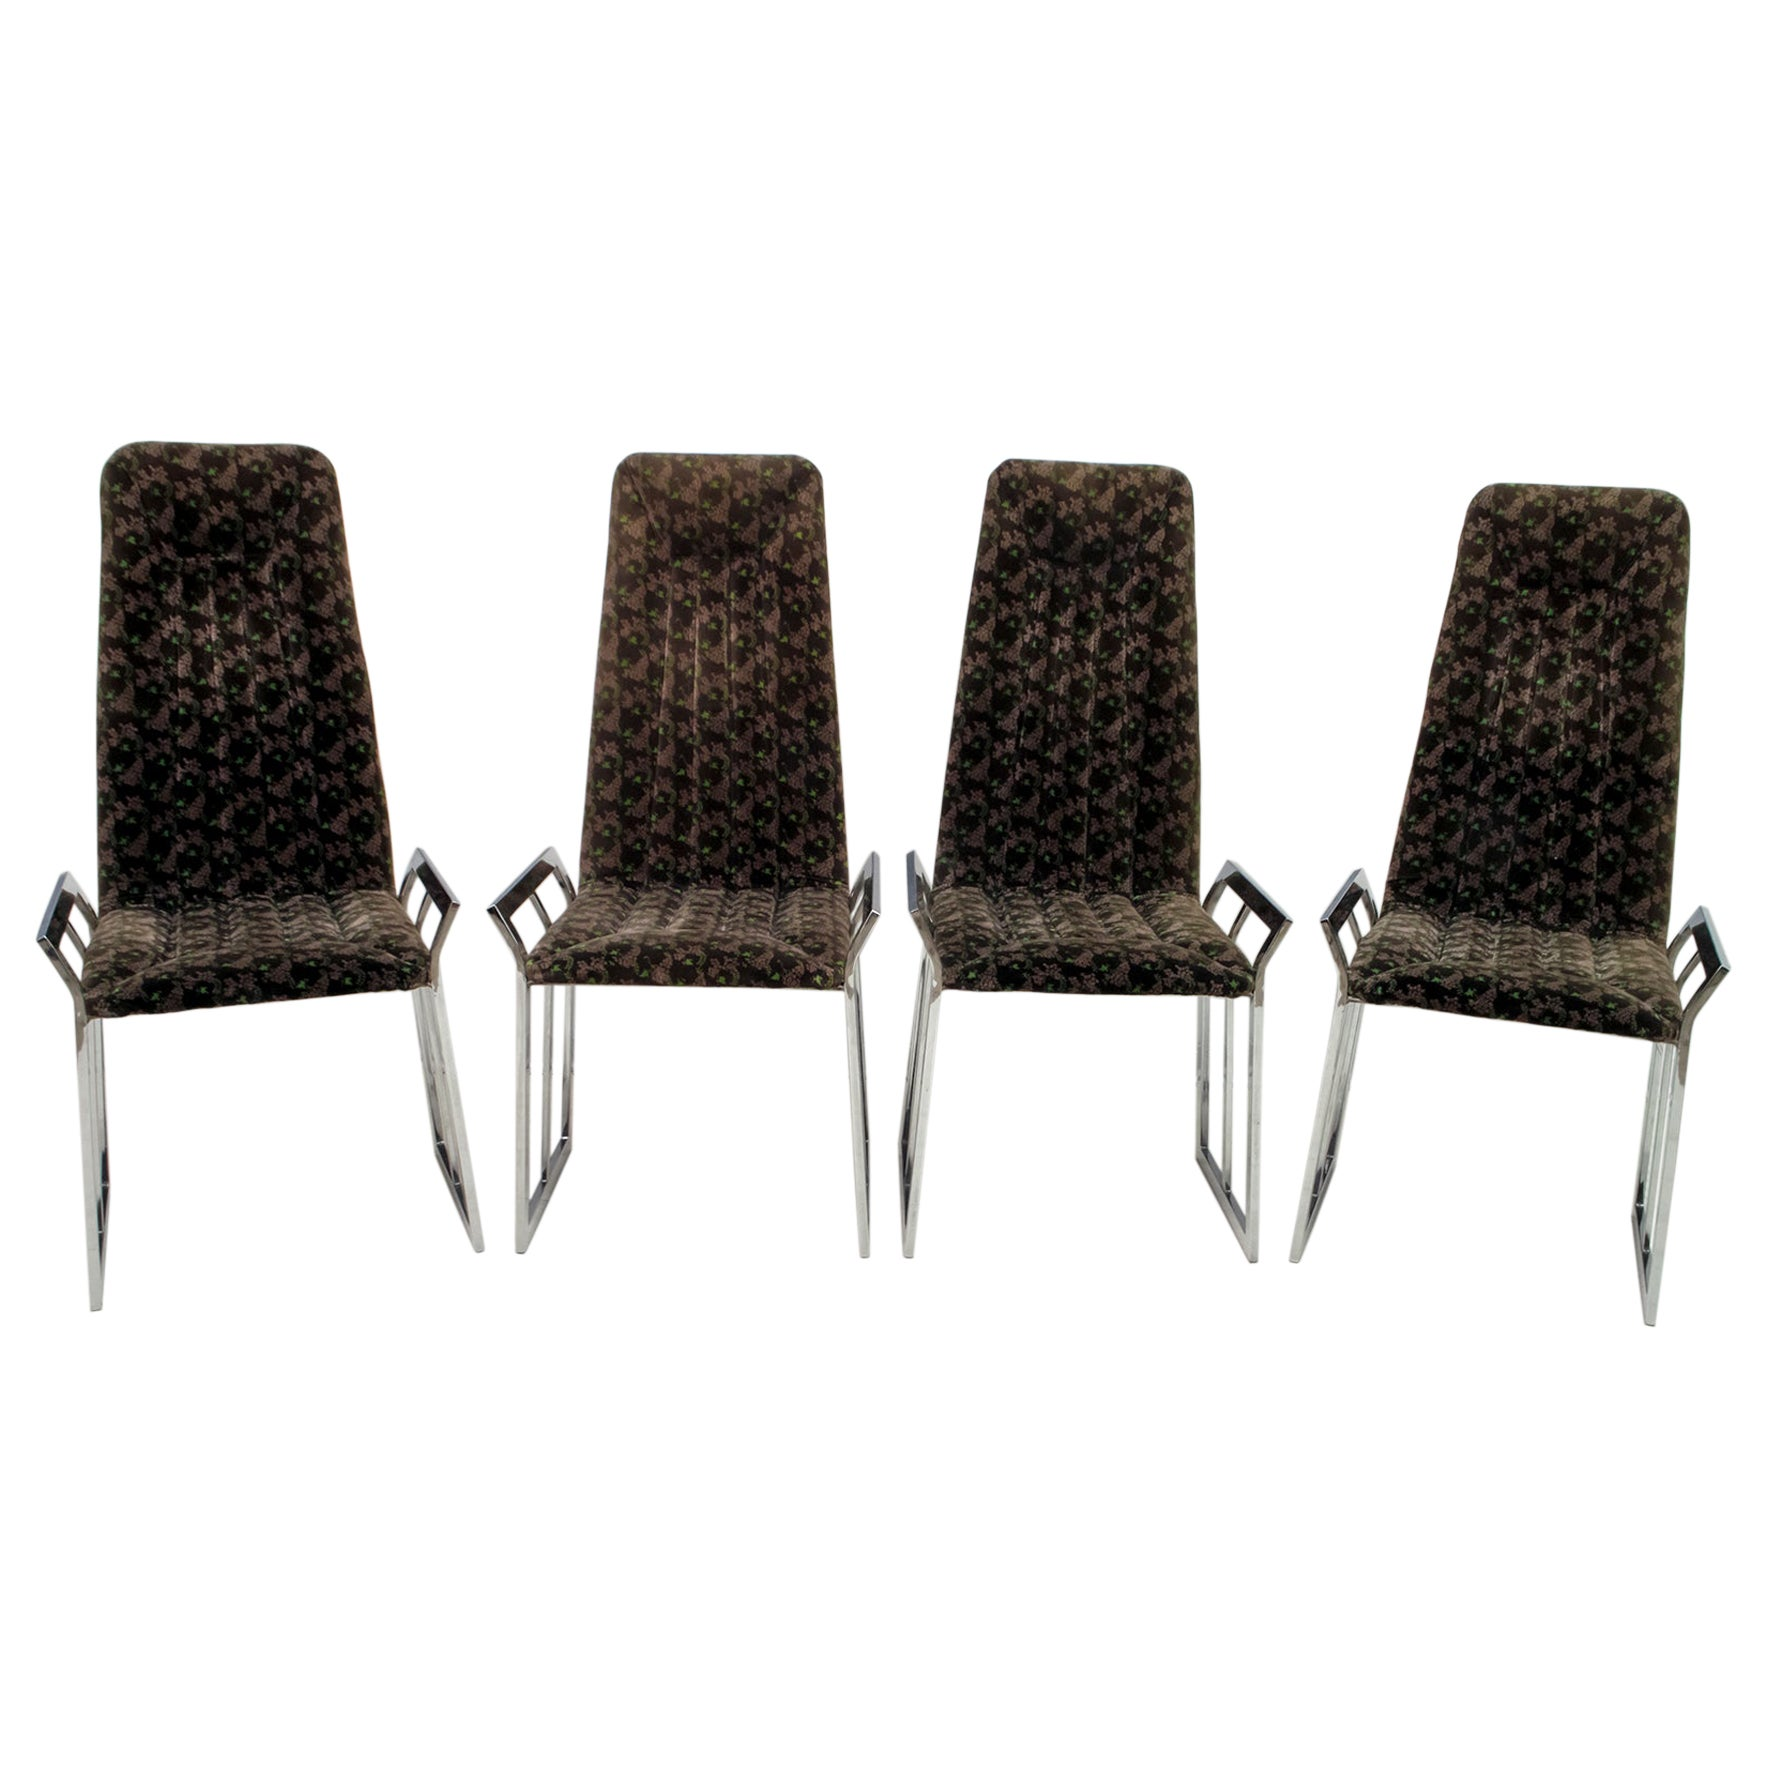 Set of 4 Mid-Century Modern Italian Chromed Steel and Velvet Dining Chairs 1970s